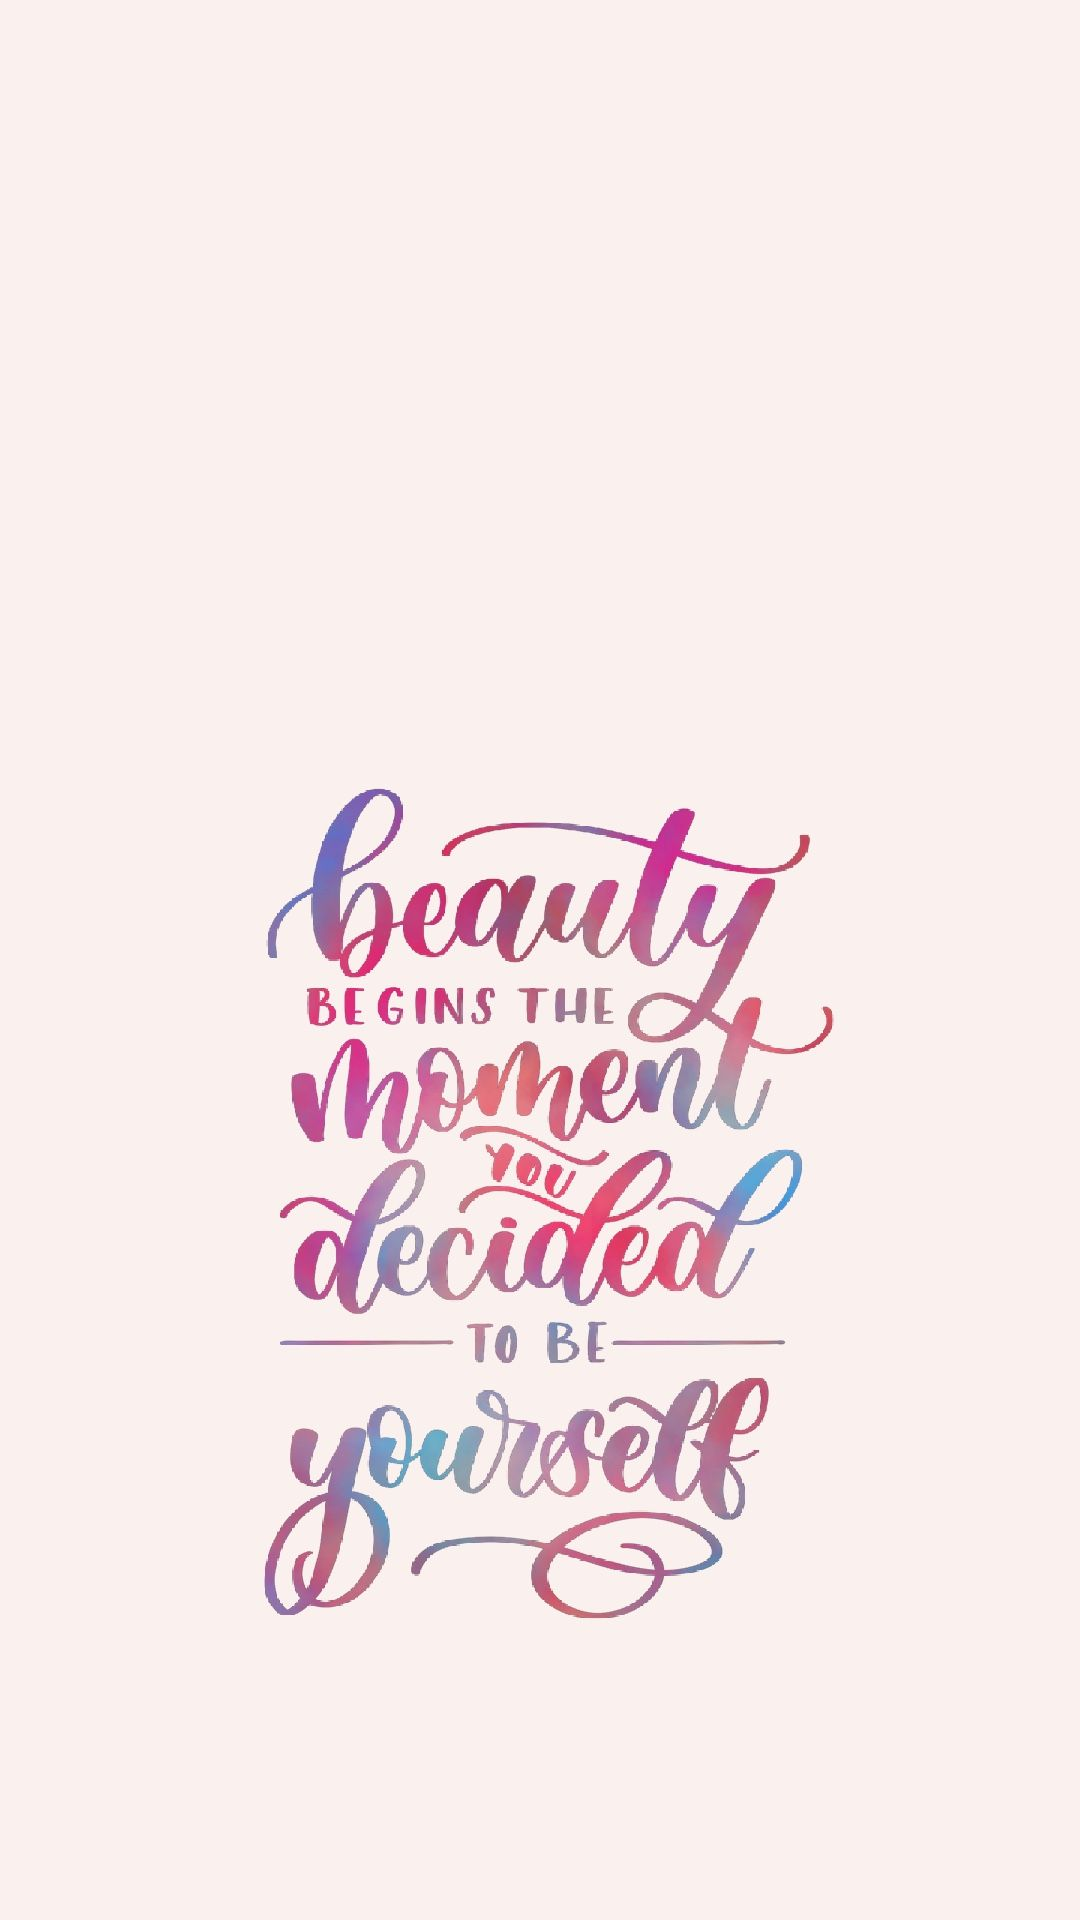 Pin By Pari On Printable Quotes Inspiring Quotes About Life Inspirational Quotes Wallpapers Hand Lettering Quotes